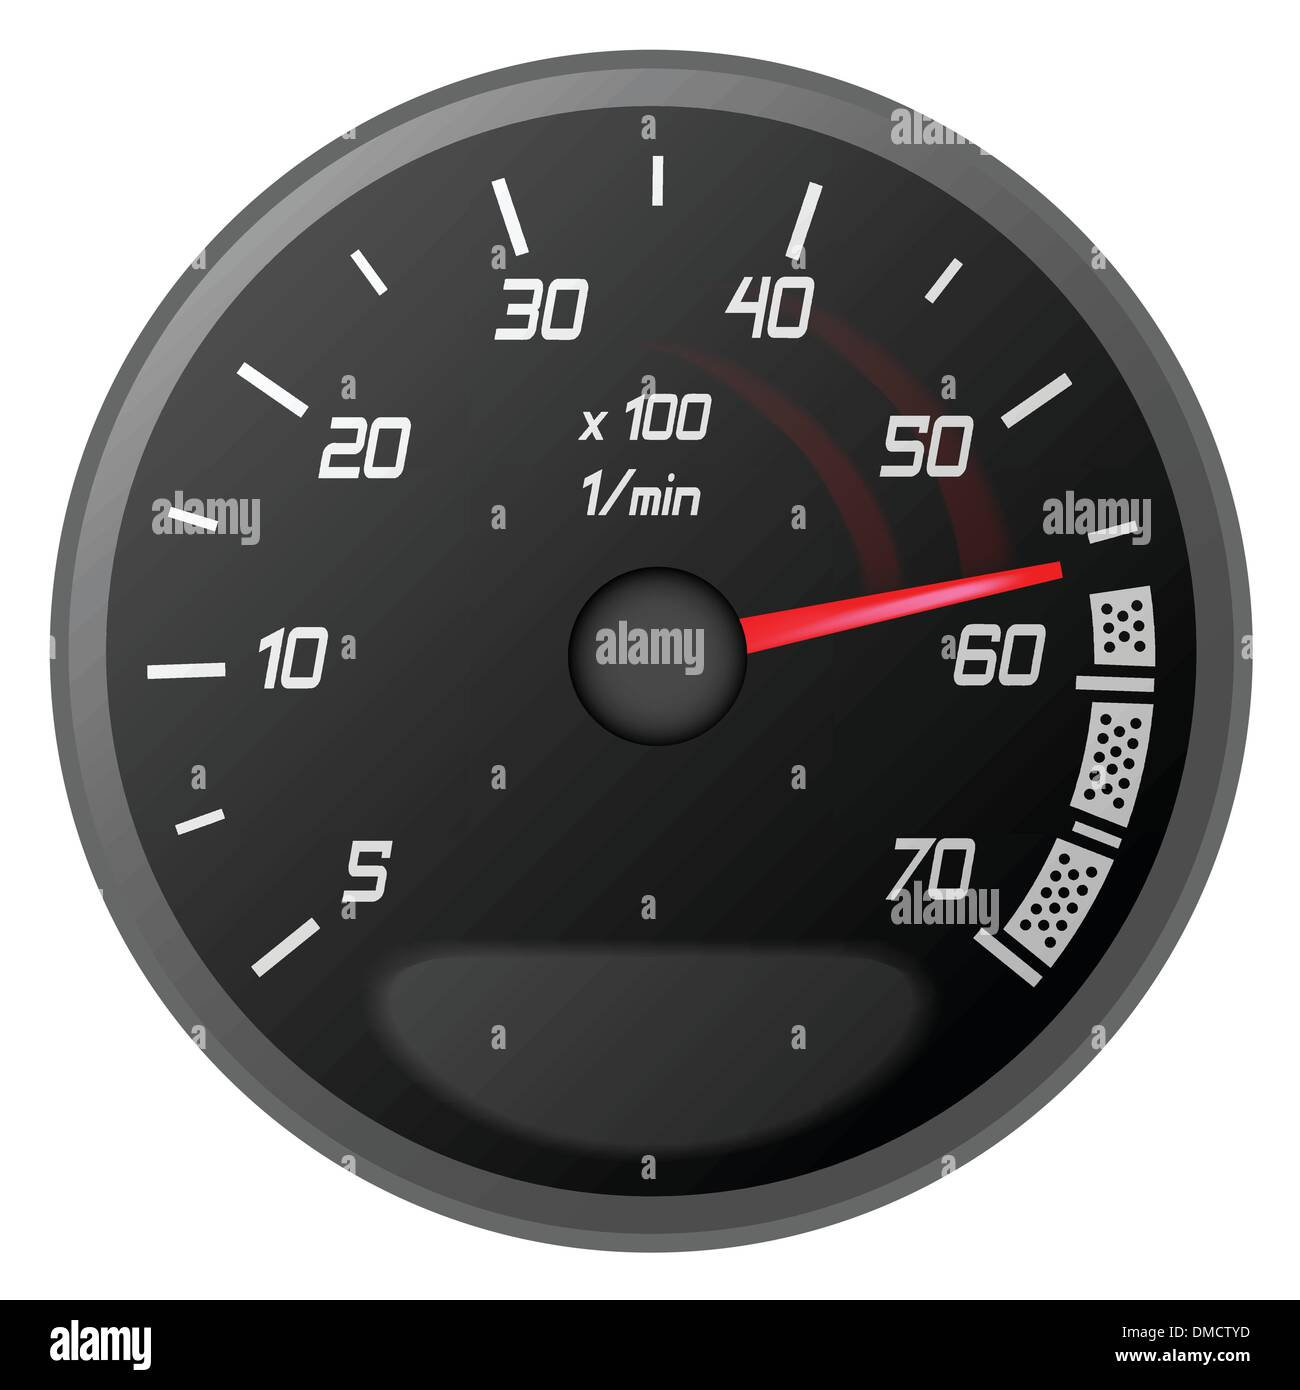 car temperature controller - Stock Image